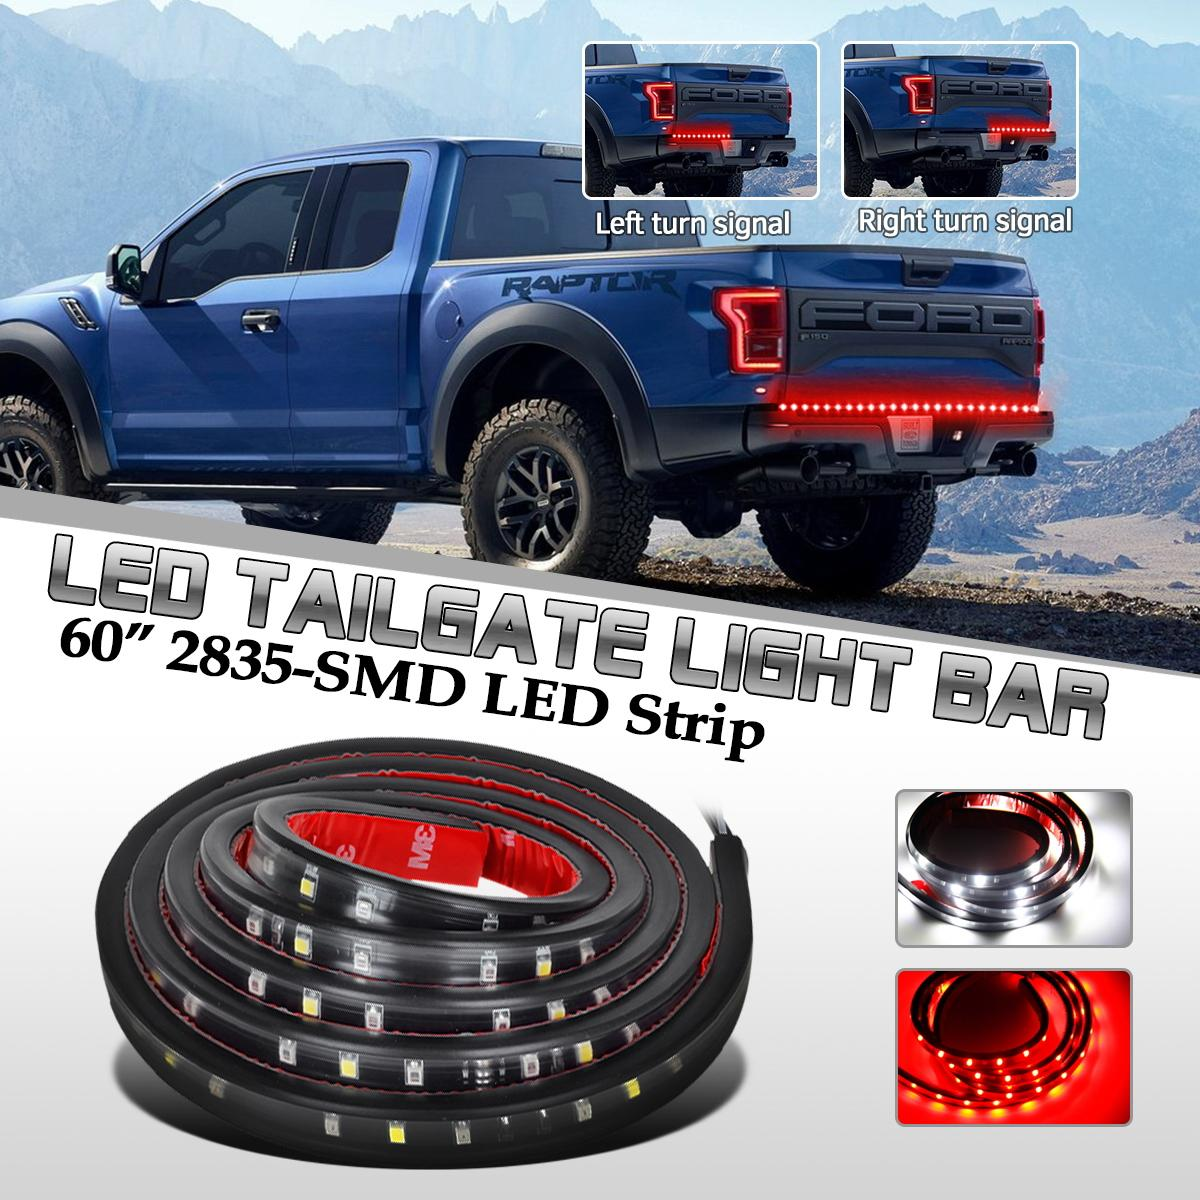 saturn sky tail lights 60 universal red white tailgate led light bar reverse brake turn signal running fits saturn sky